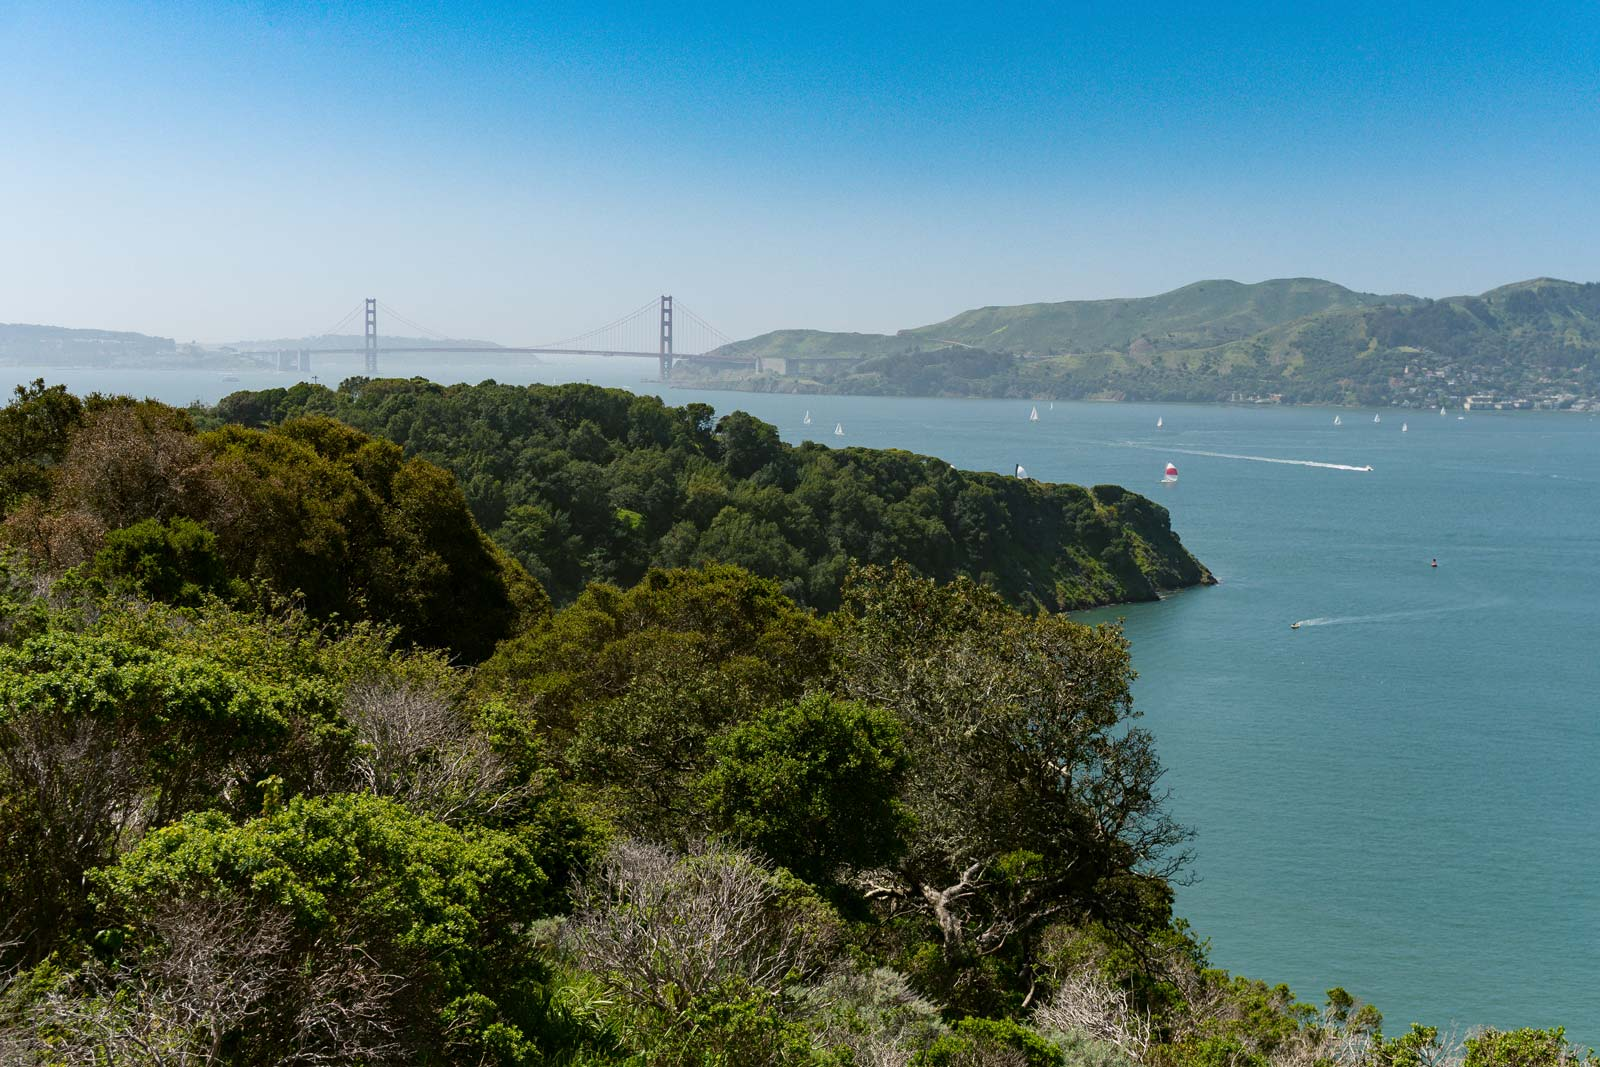 Views of Sanfrancisco from Angel Island State Park